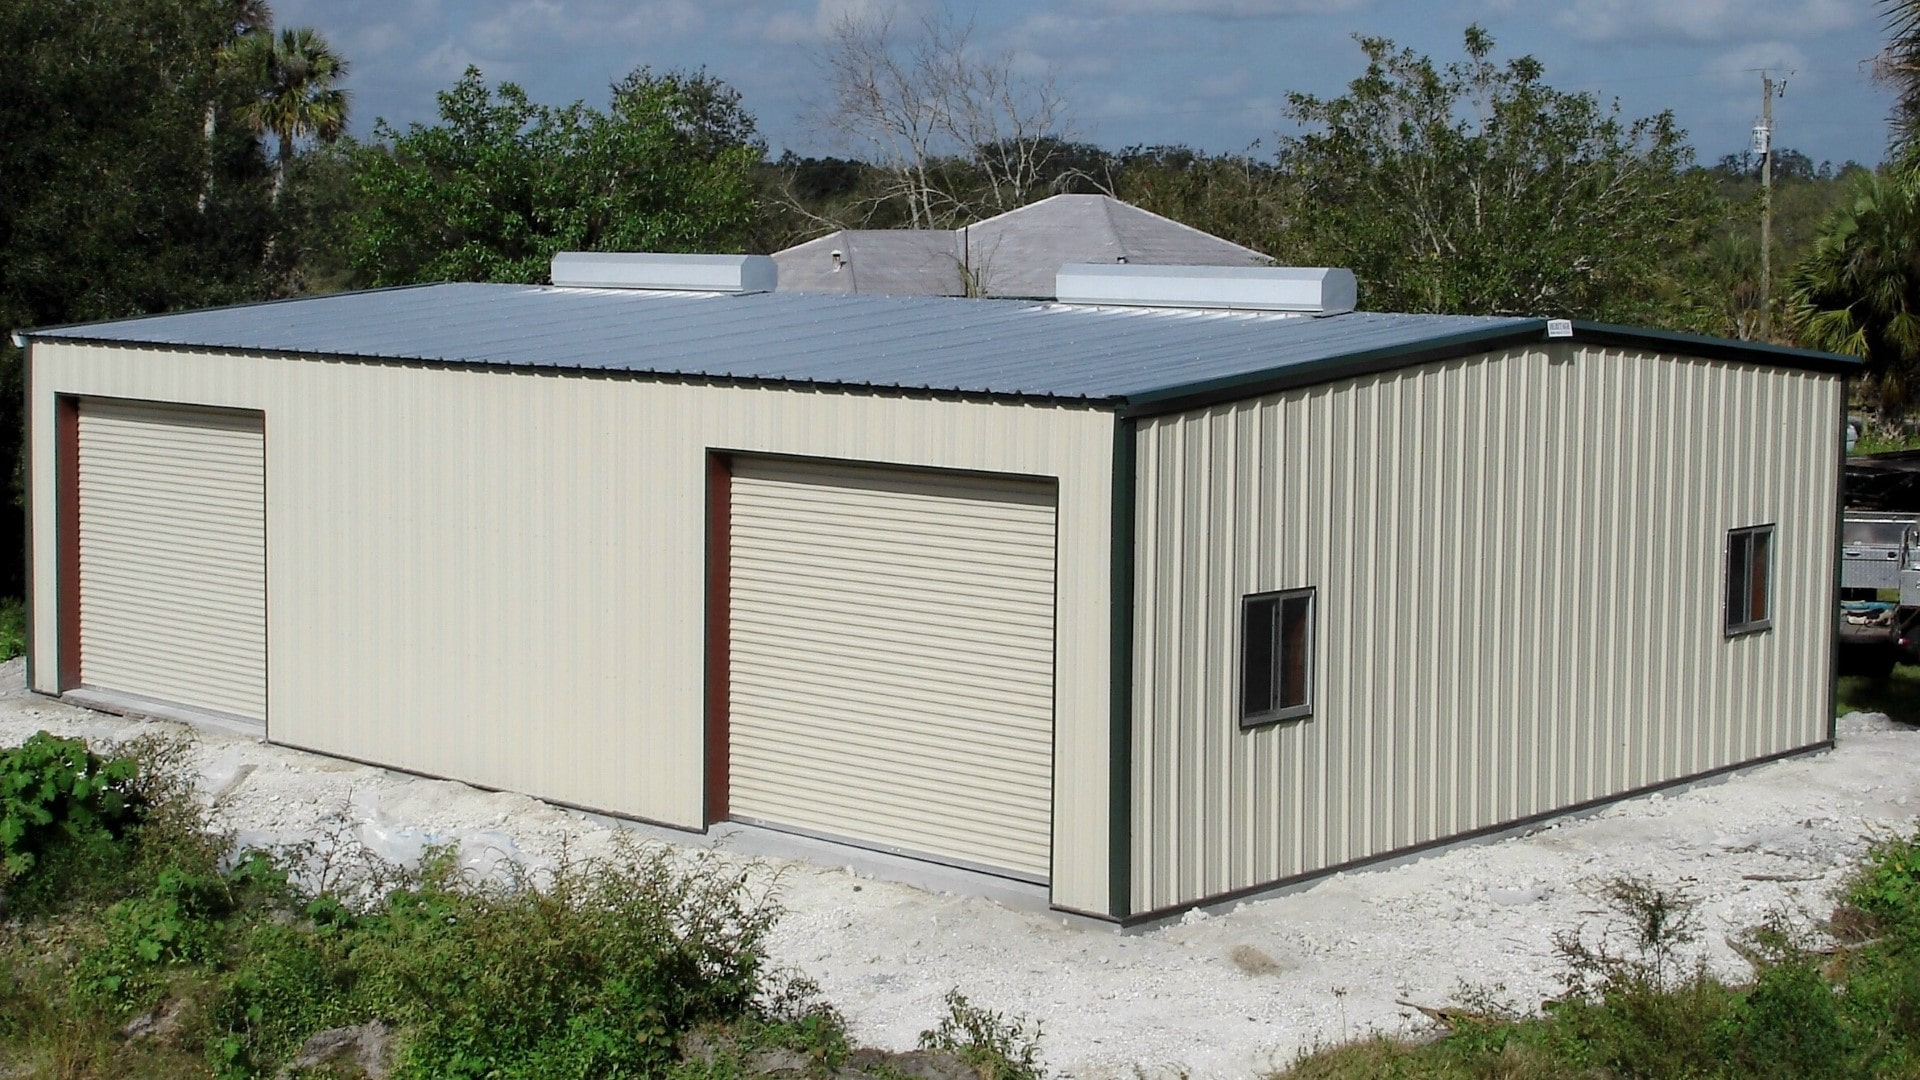 Tan metal garage kit with color-matched commercial rollup doors, windows and ridge vents.